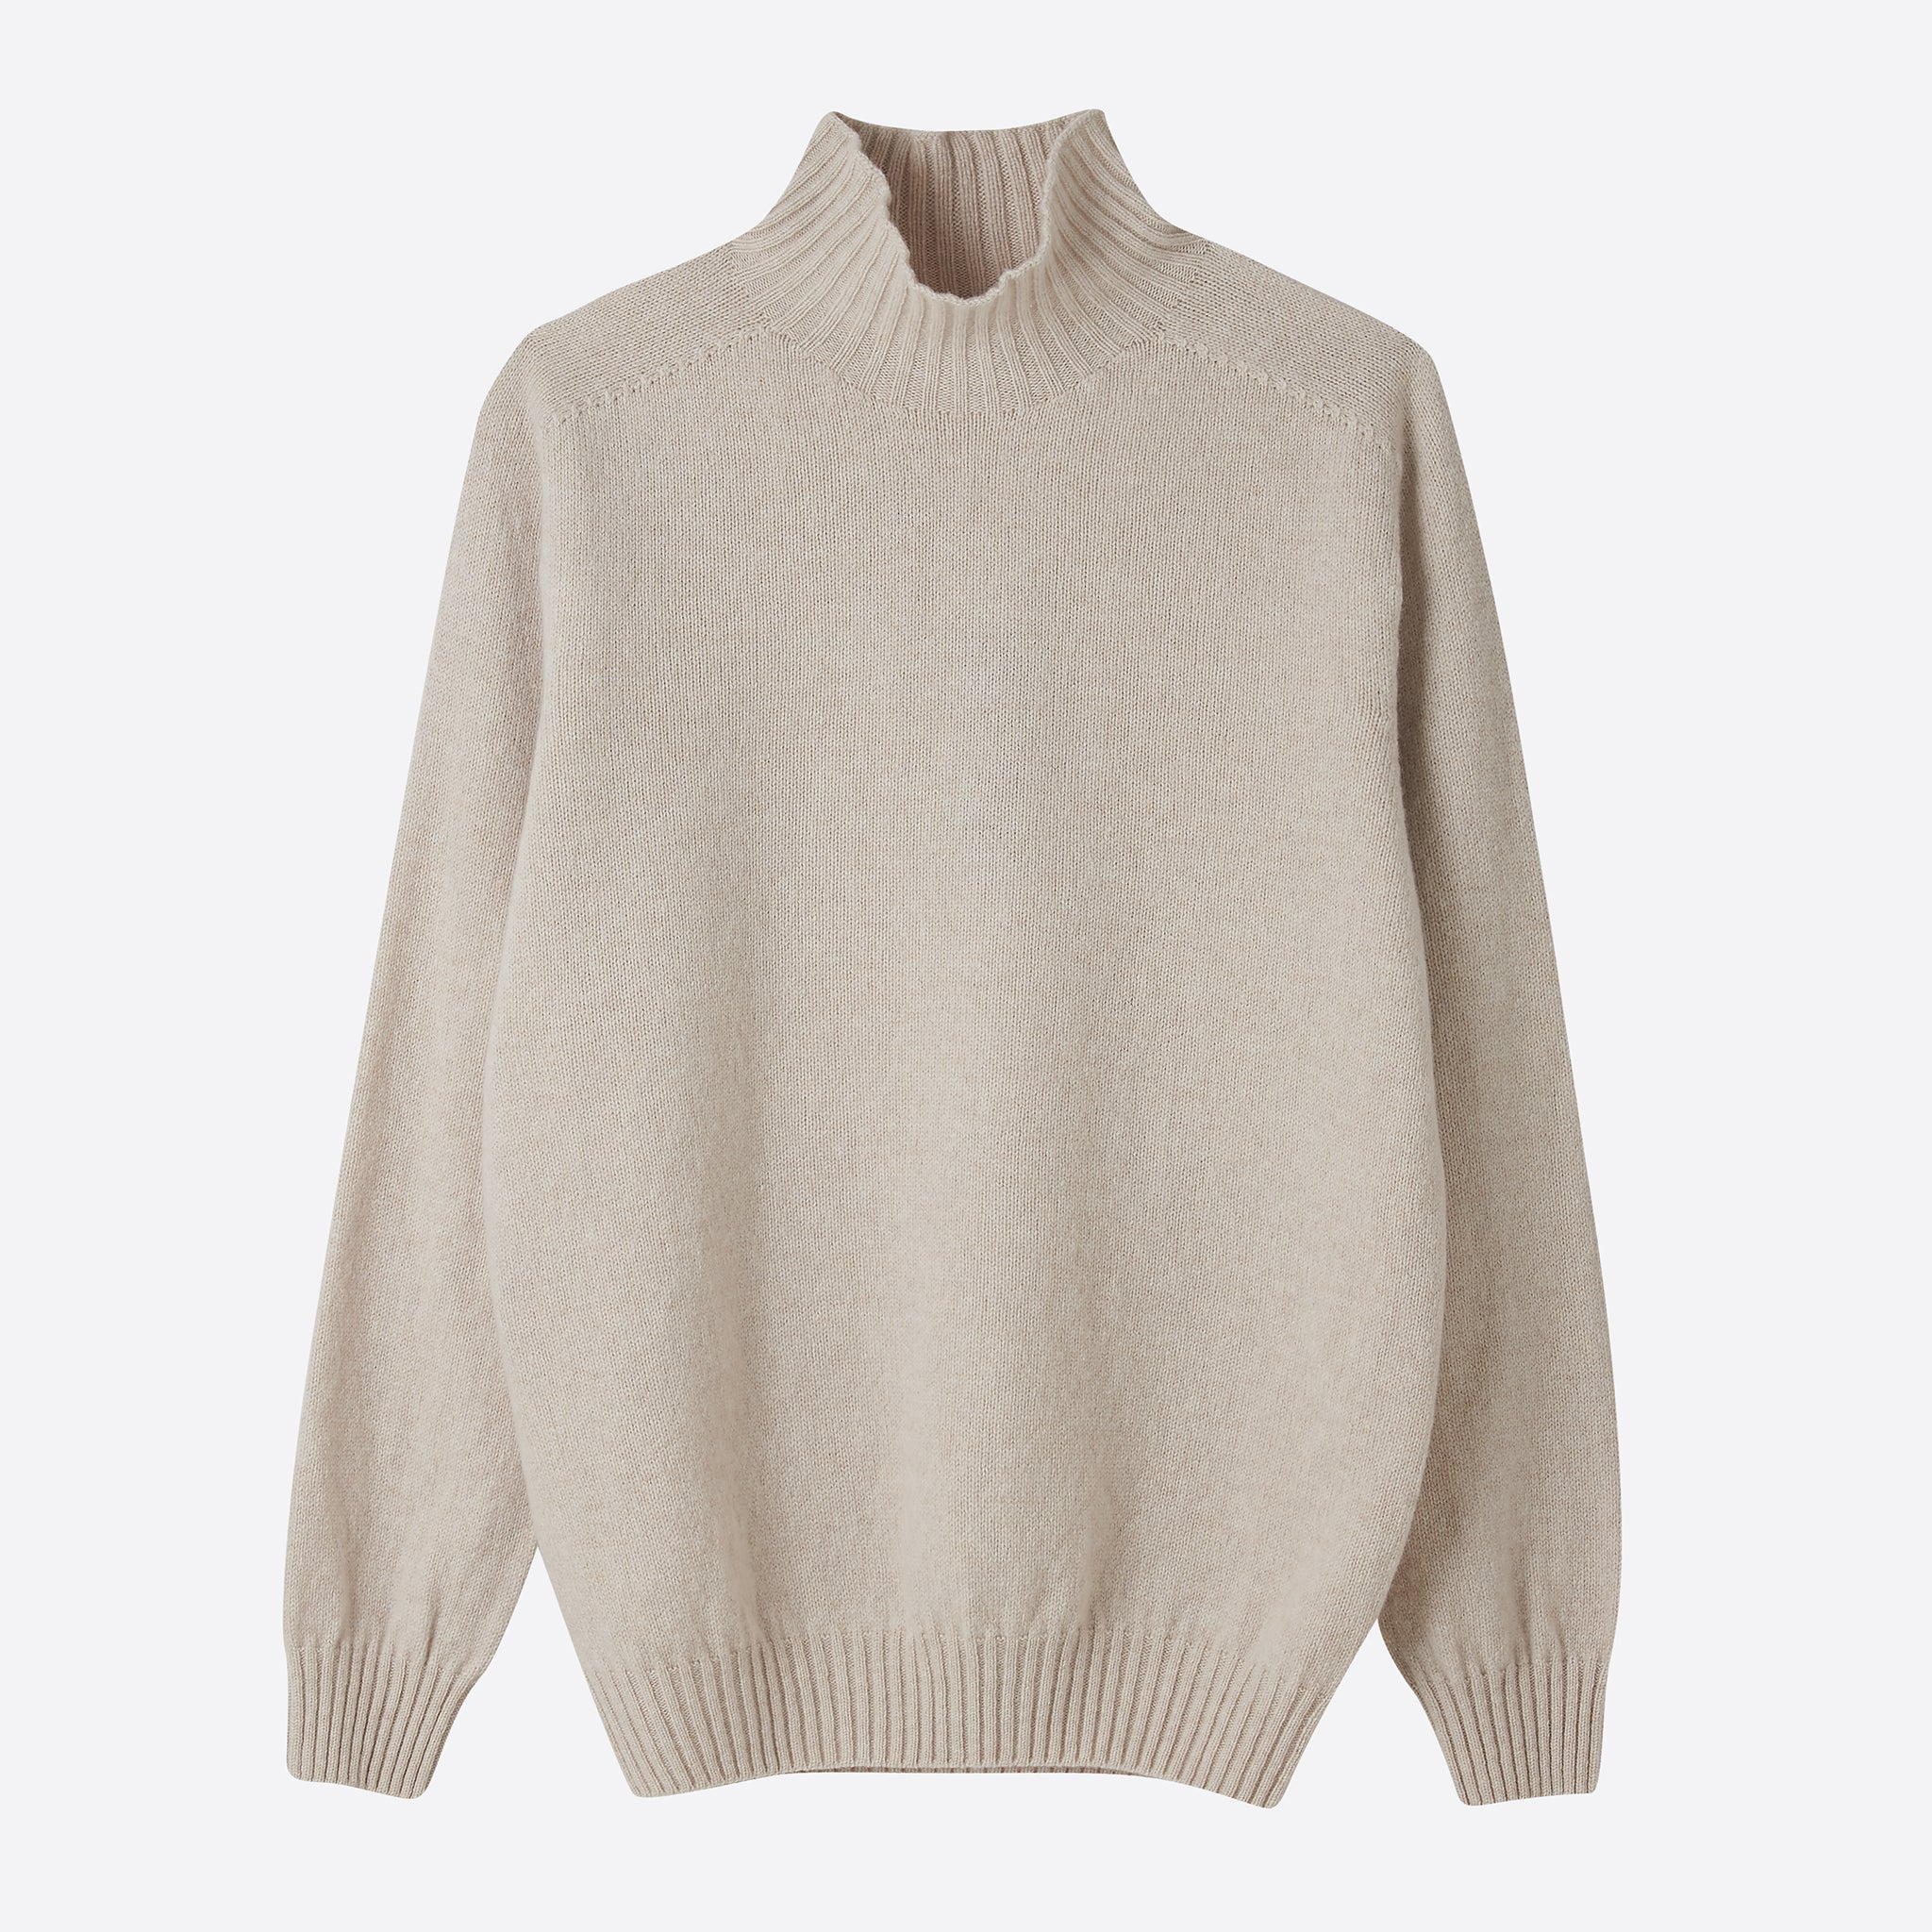 Sideline Holly Jumper in Oatmeal